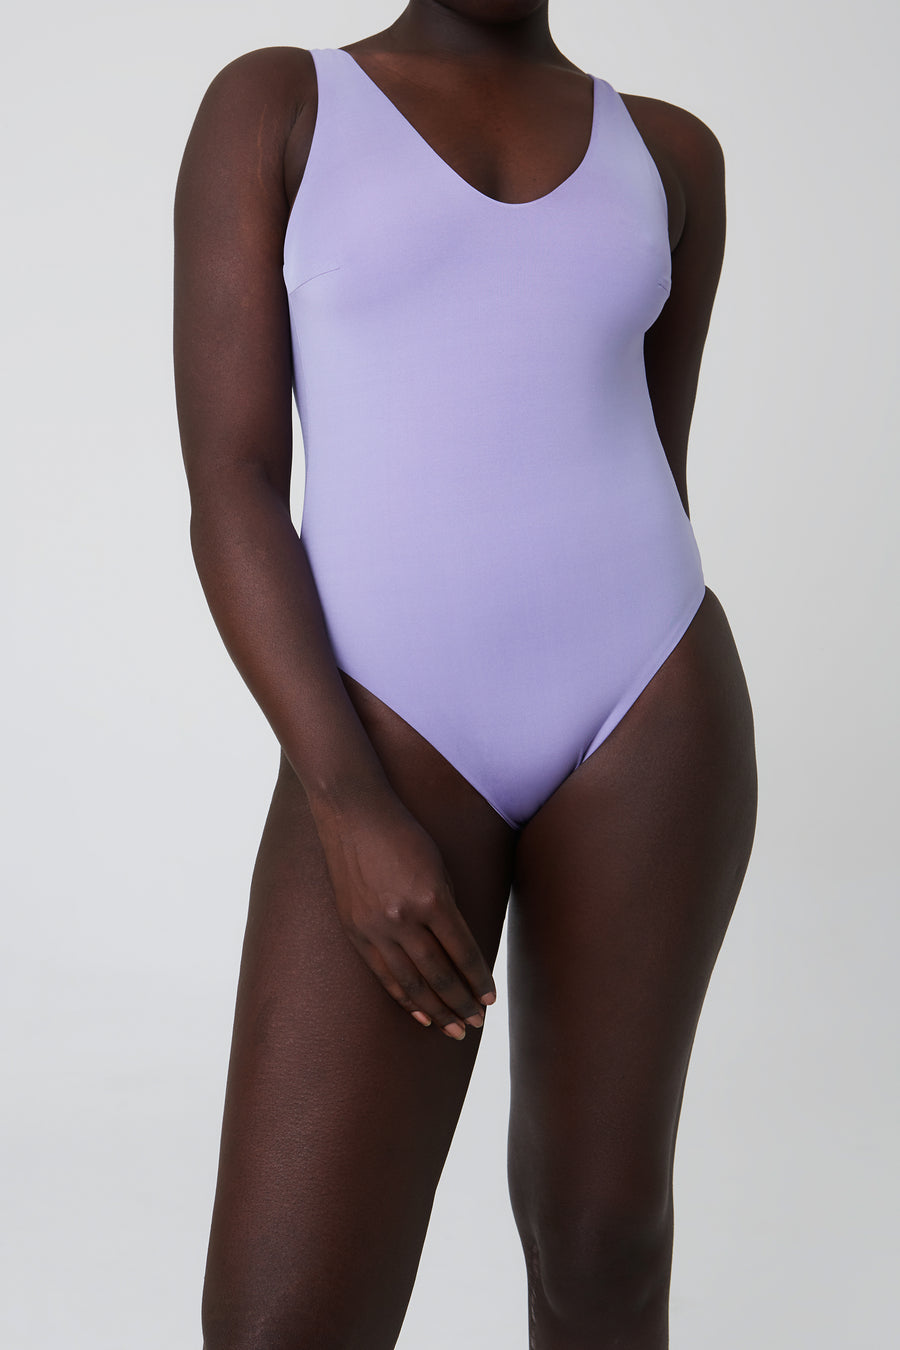 Swimsuit – v-neck, lavender